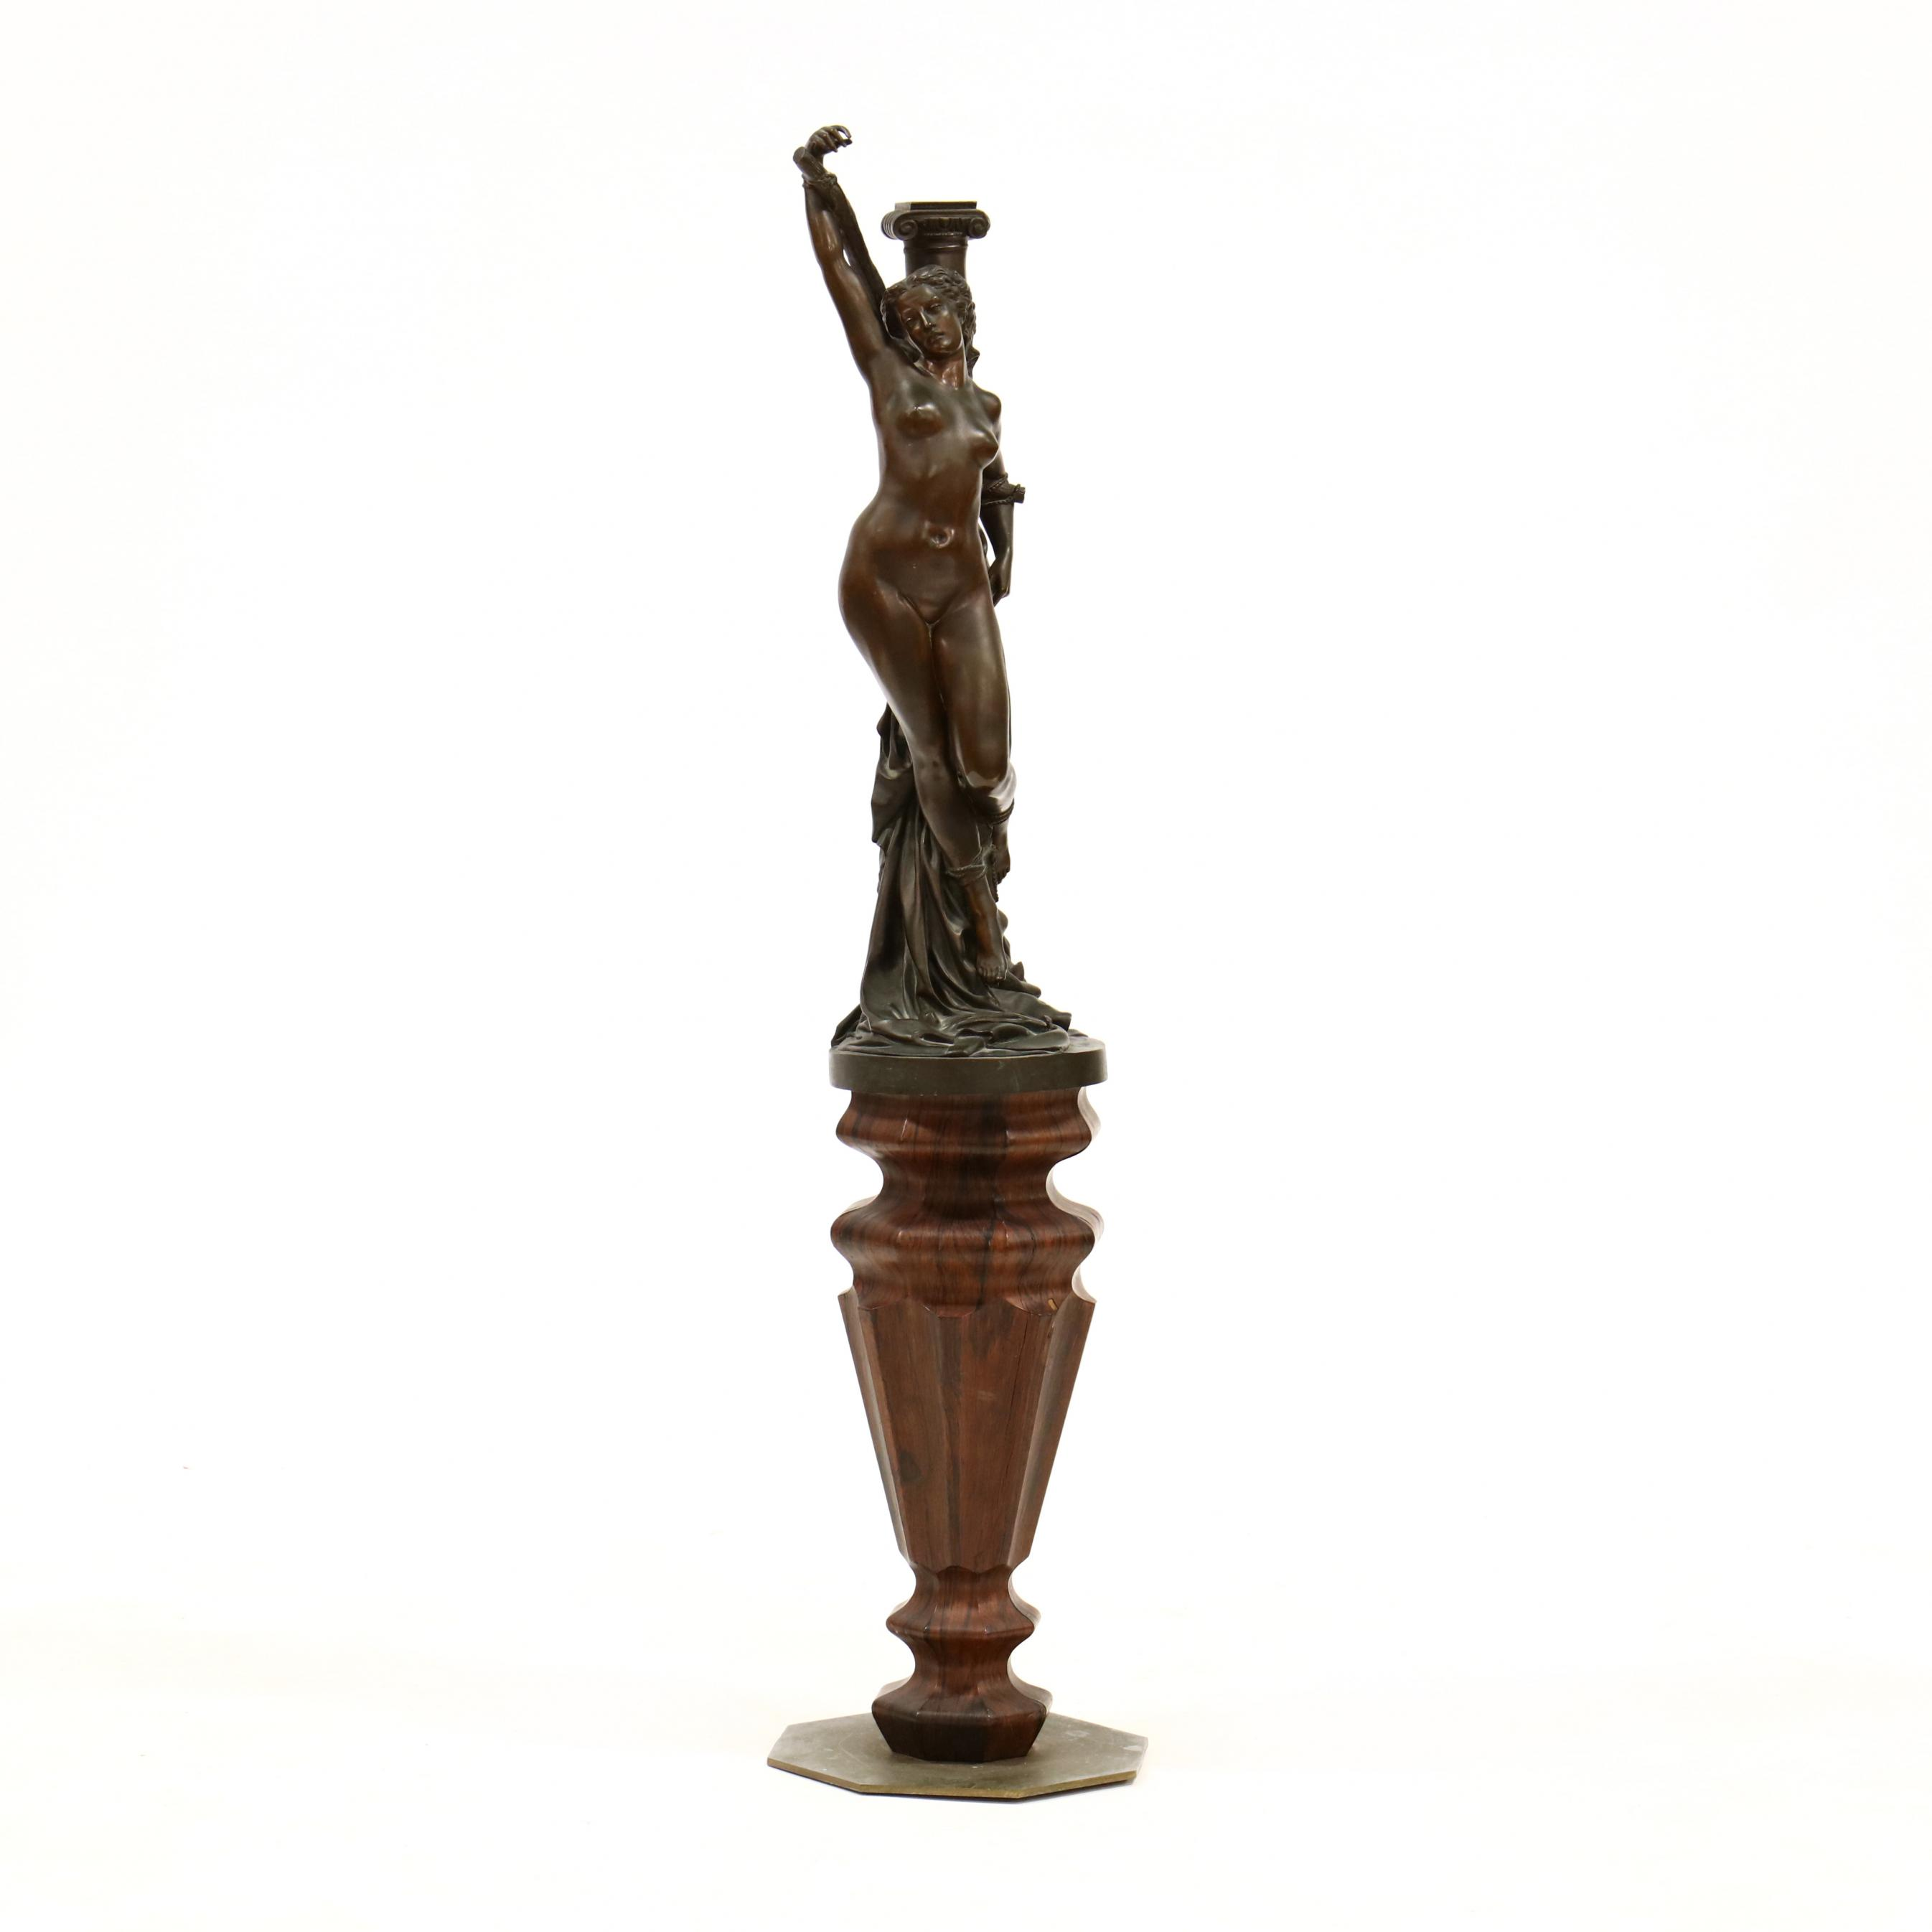 gaston-guitton-french-1825-1891-bronze-sculpture-of-andromeda